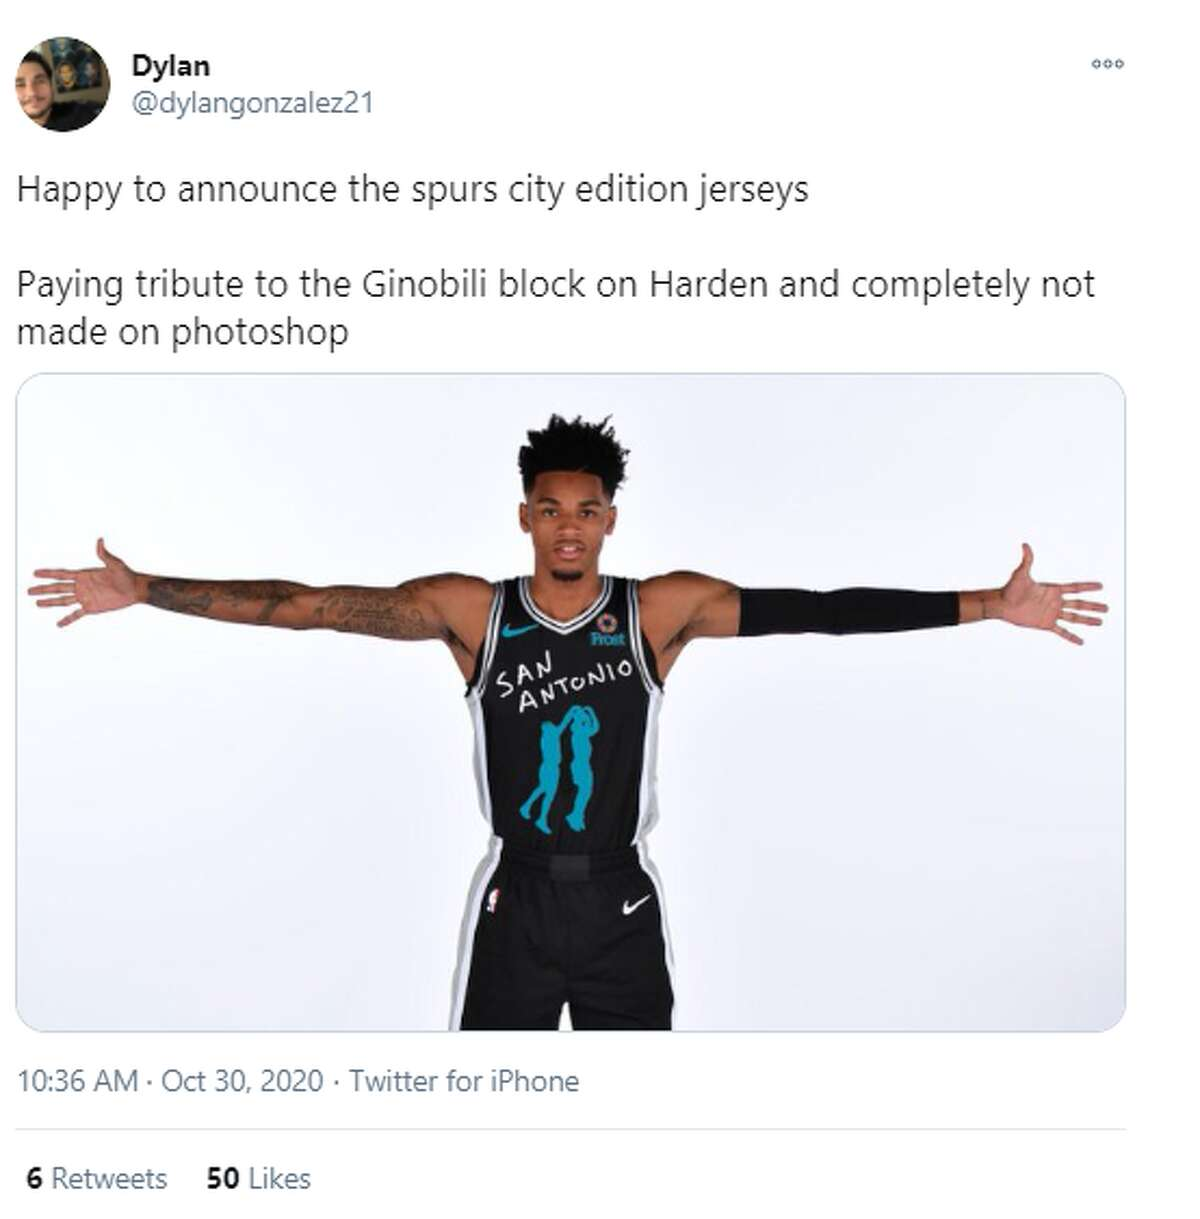 @dylangonzalez1: Happy to announce the spurs city edition jerseys Paying tribute to the Ginobili block on Harden and completely not made on photoshop